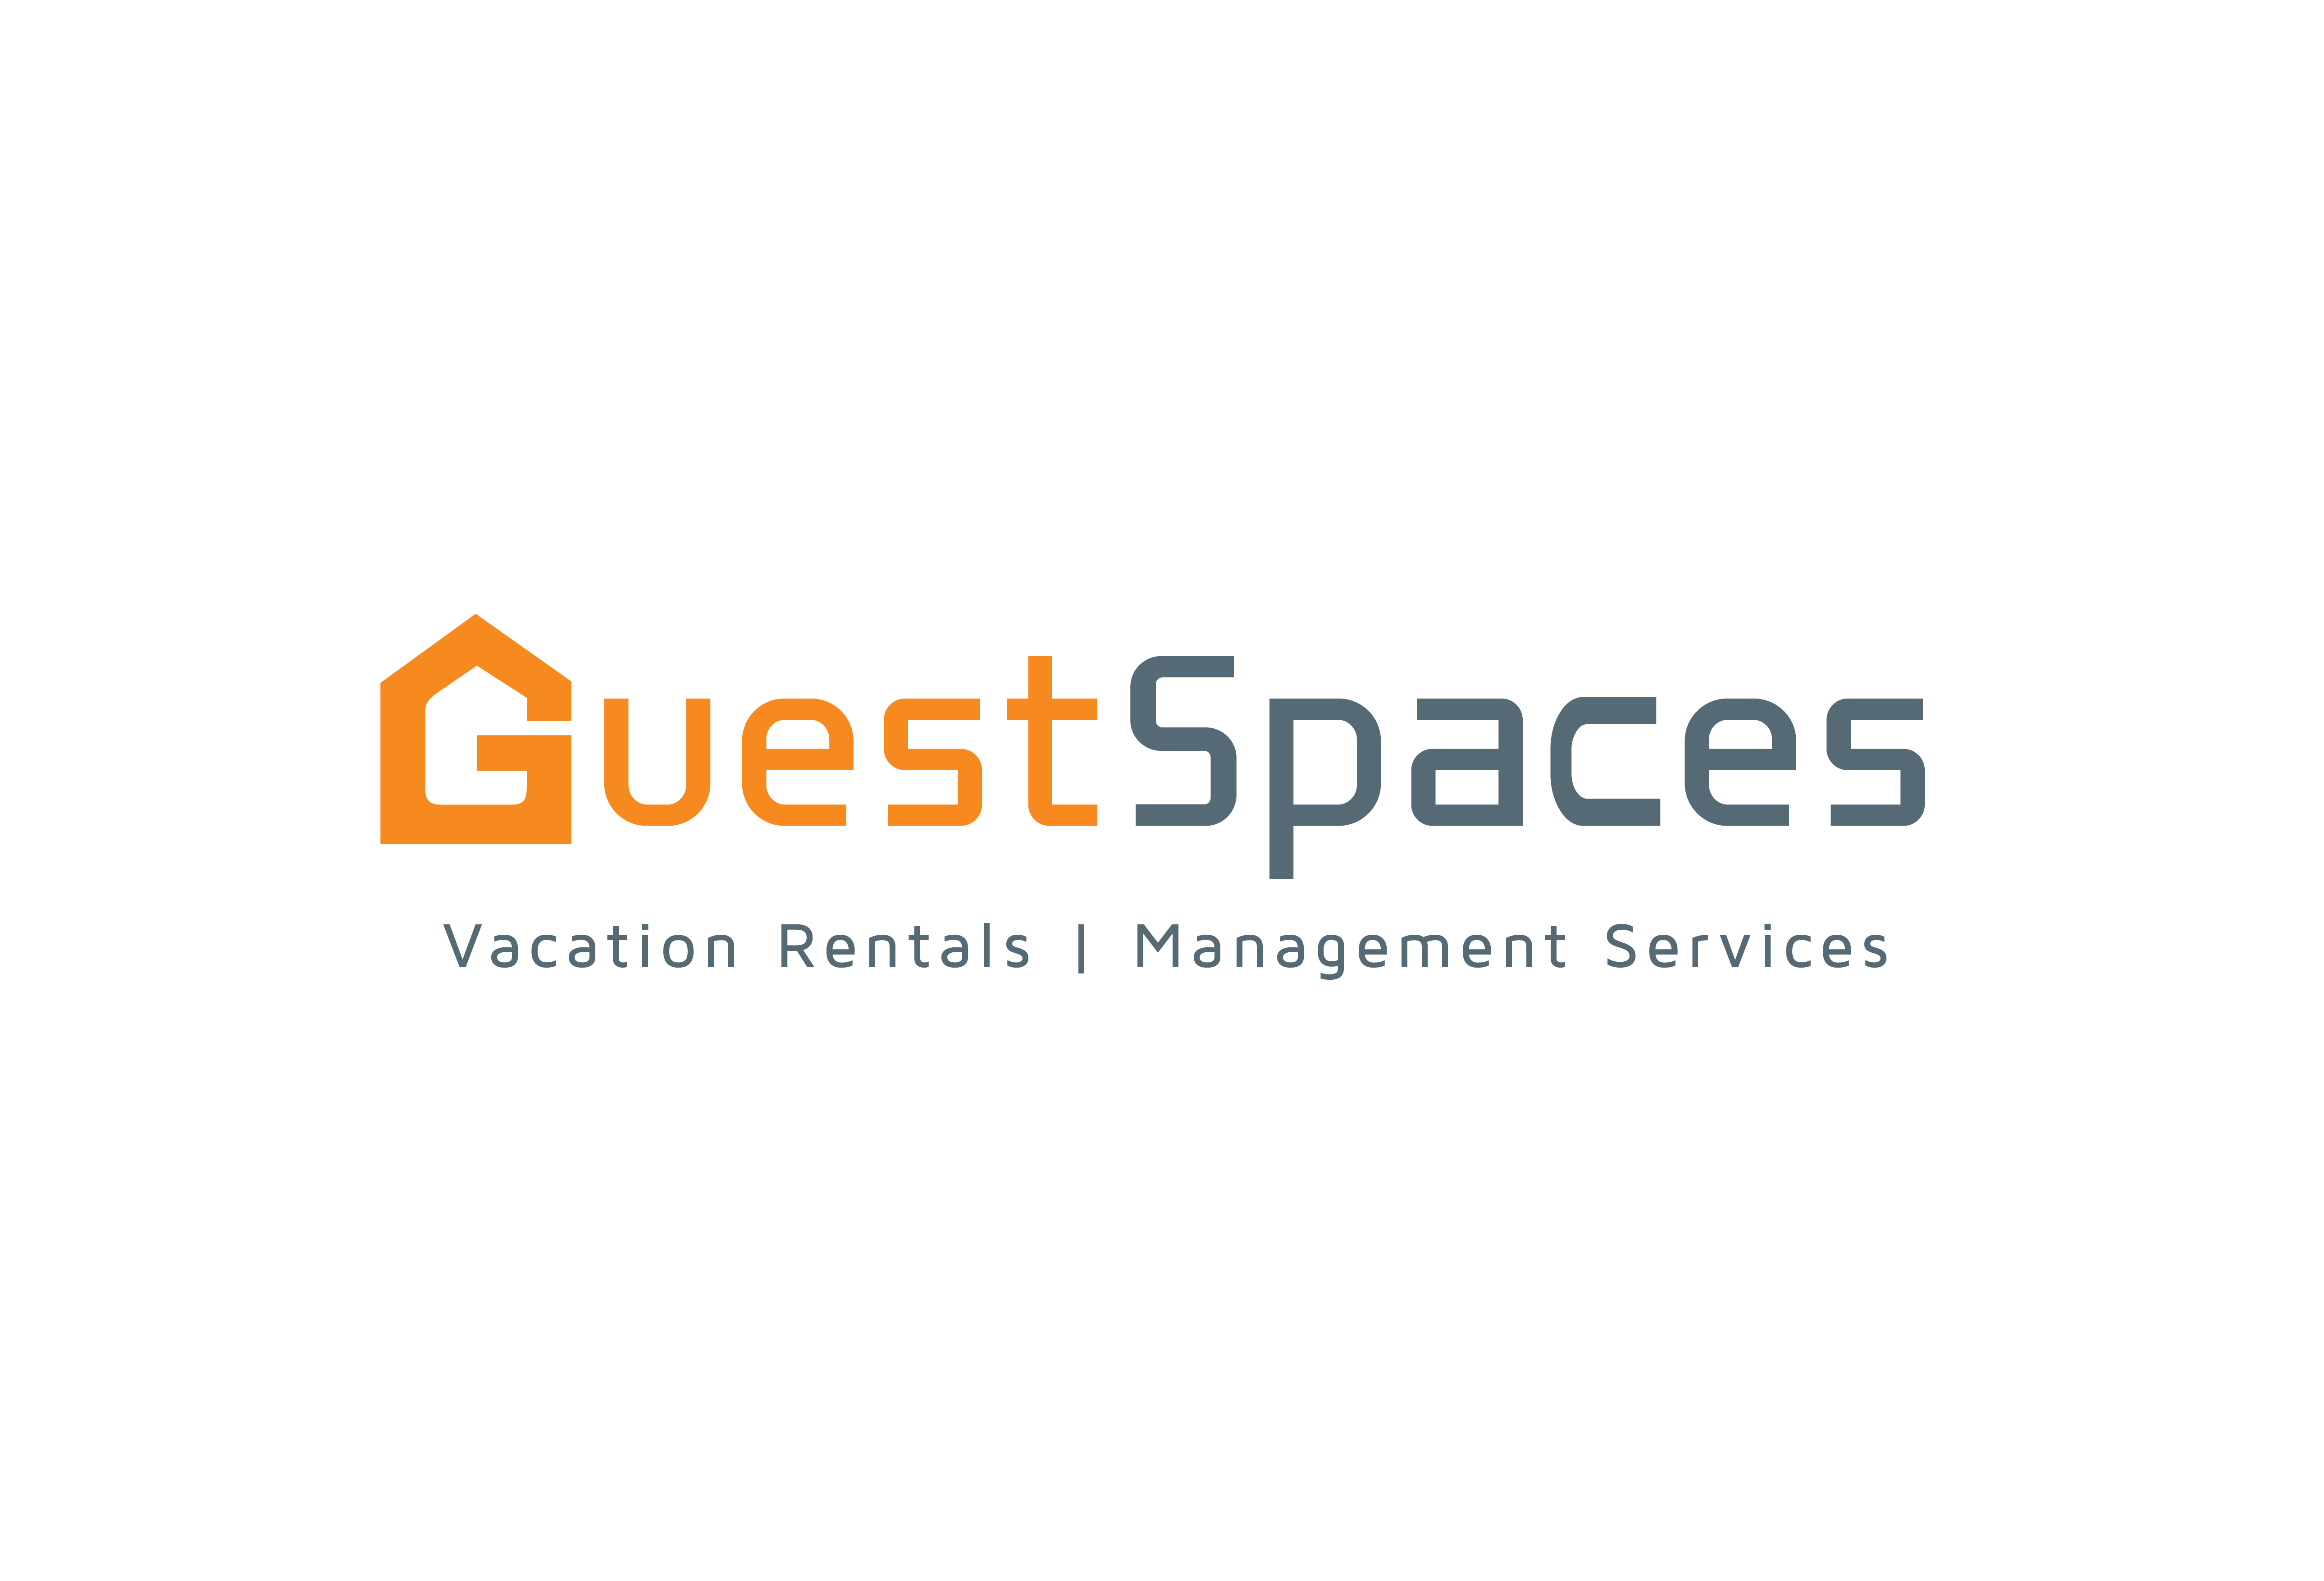 GuestSpaces Vacation Rentals and Property Management Services Logo